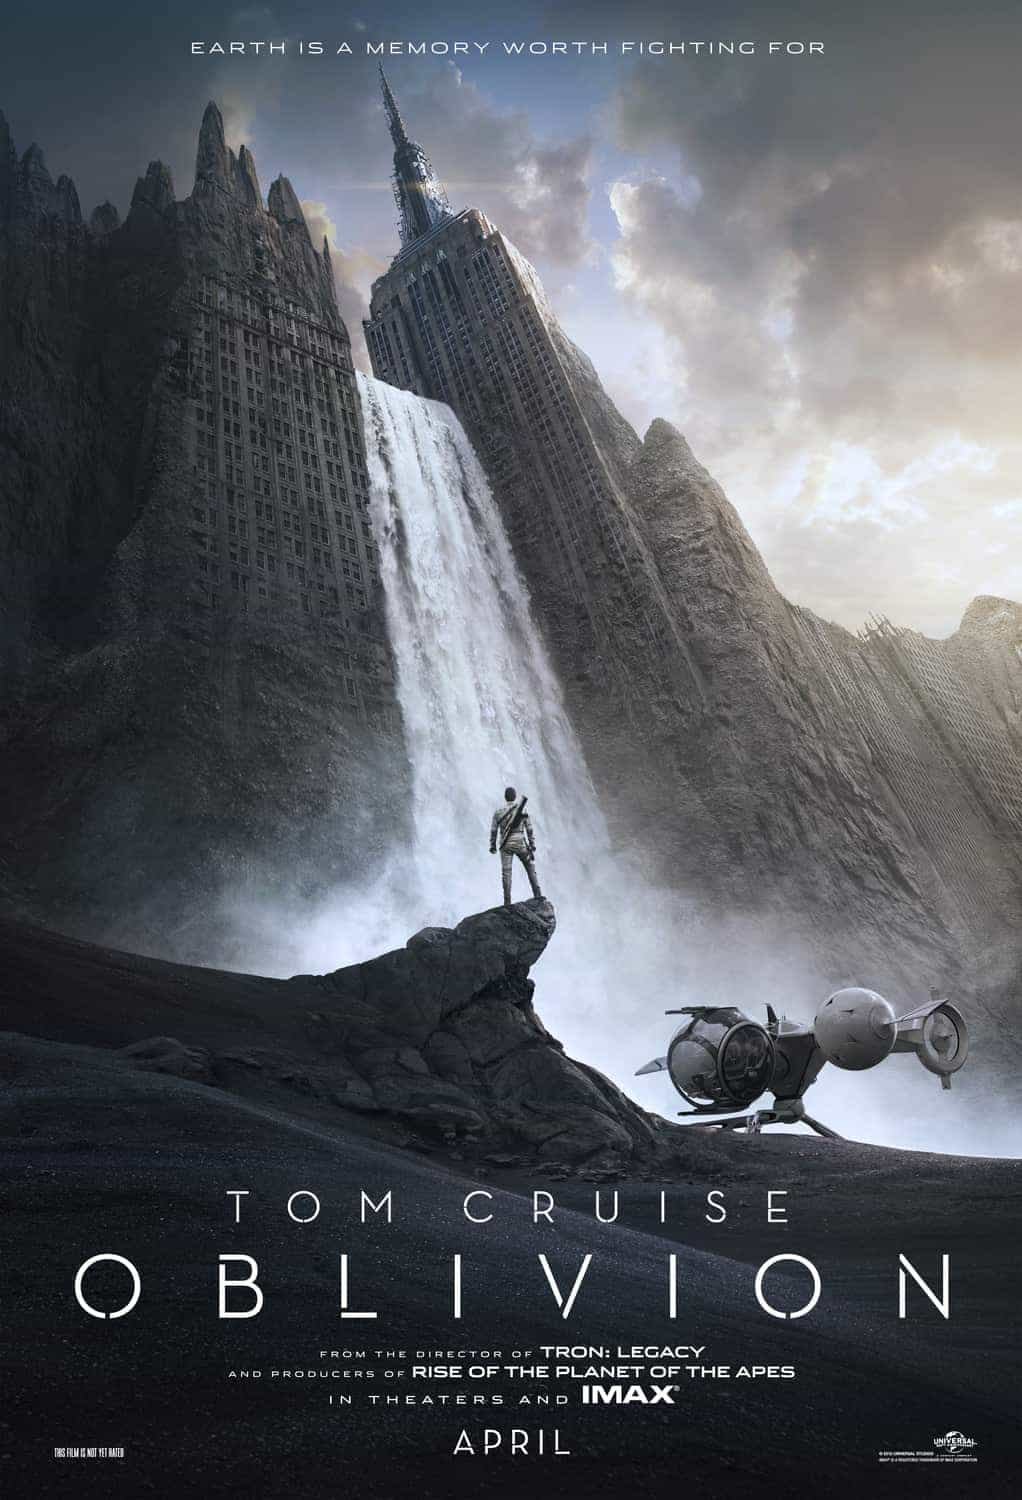 Tom Cruise in Oblivion, first trailer